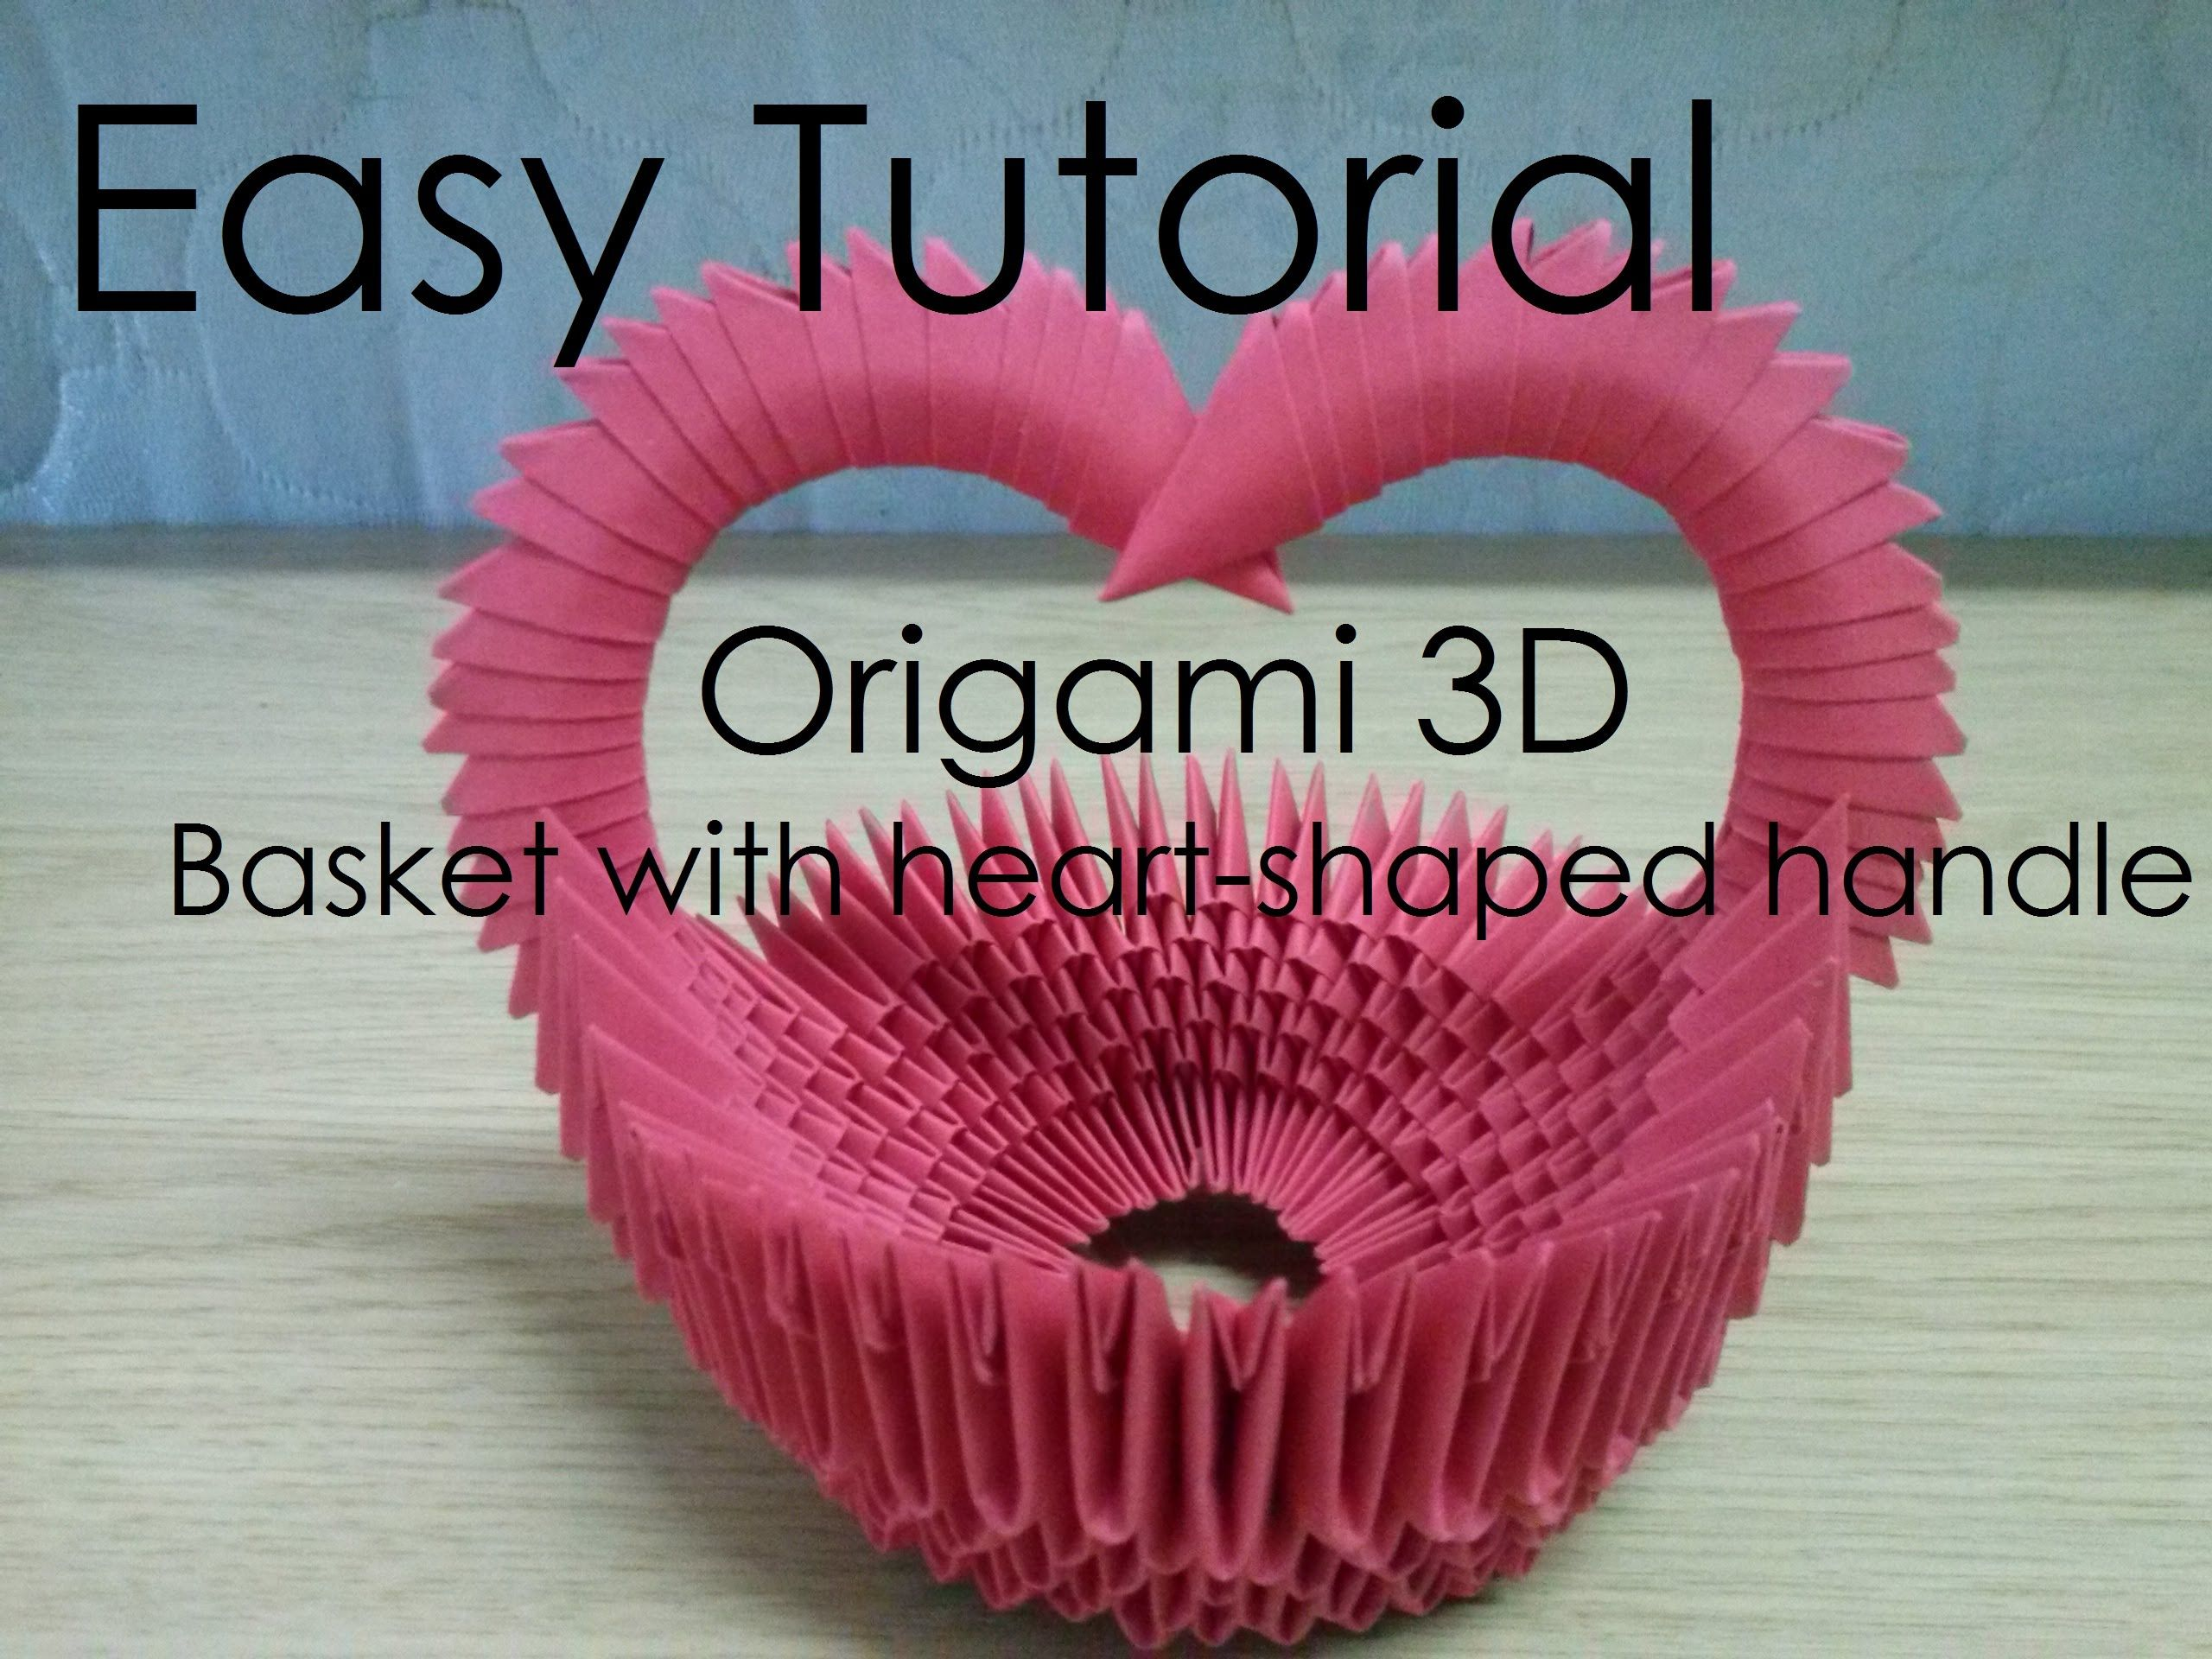 Easy tutorial origami 3d basket with heart shaped handle easy tutorial origami 3d basket with heart shaped handle jeuxipadfo Gallery